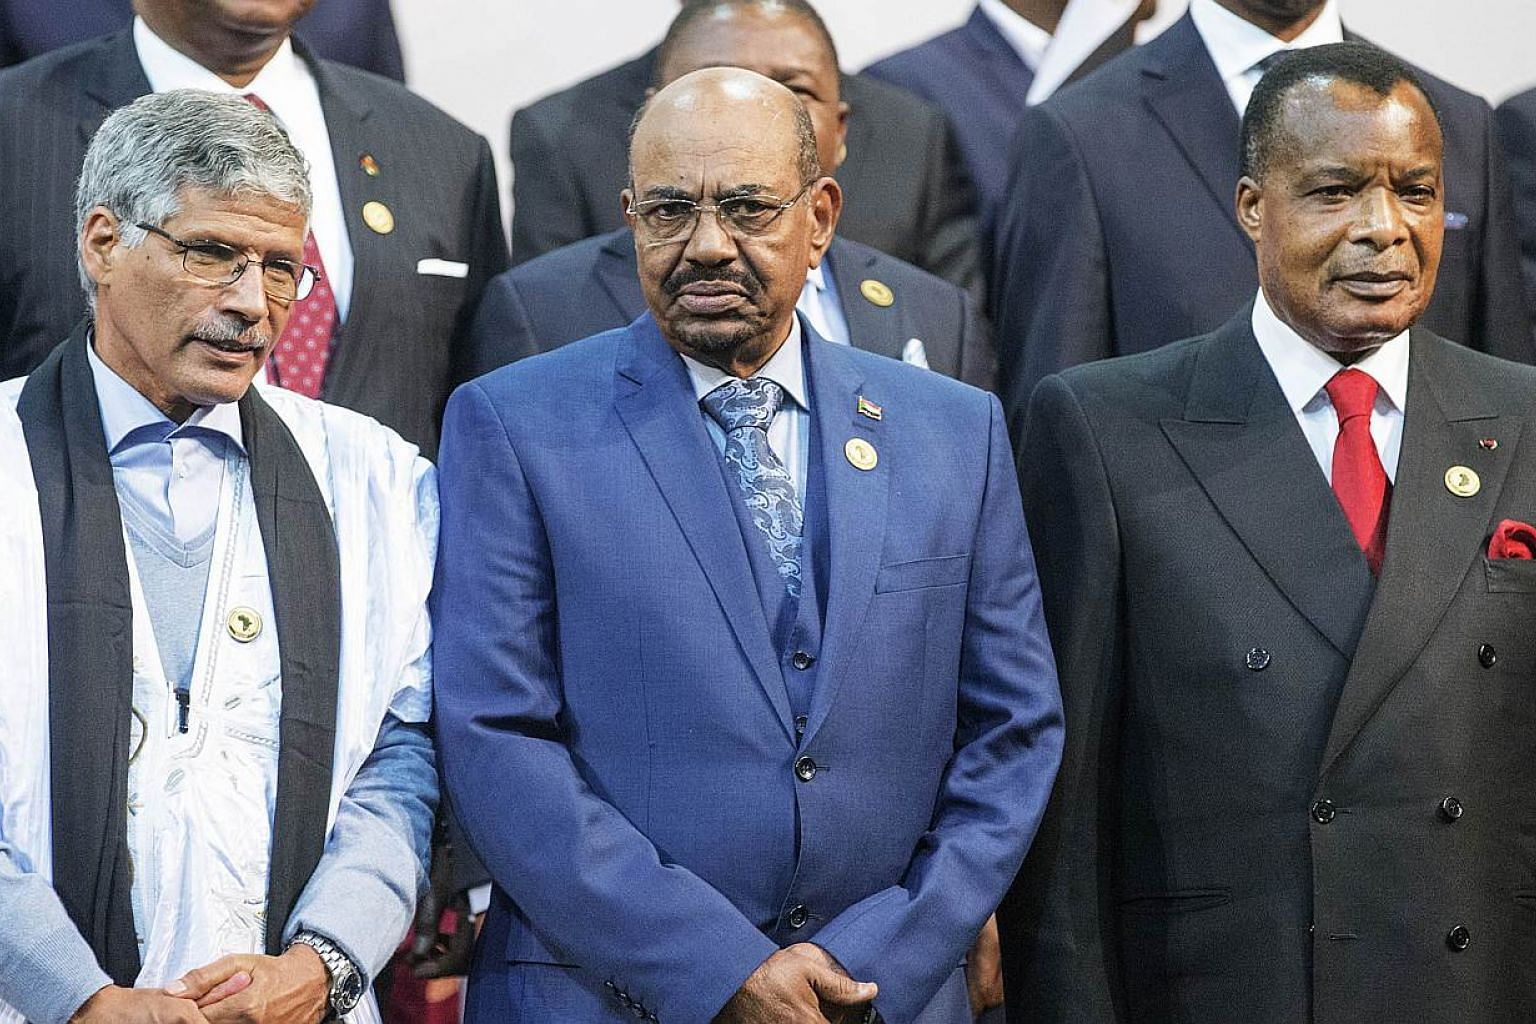 Sudanese President Omar al-Bashir (centre), Congo's President Denis Sasso-Nguesso (right) and Prime Minister of the Sahrawi Arab Democratic Republic Abdelkader Taleb Oumar (left) pose during a photo call at the 25th African Union Summit in Sandton, S